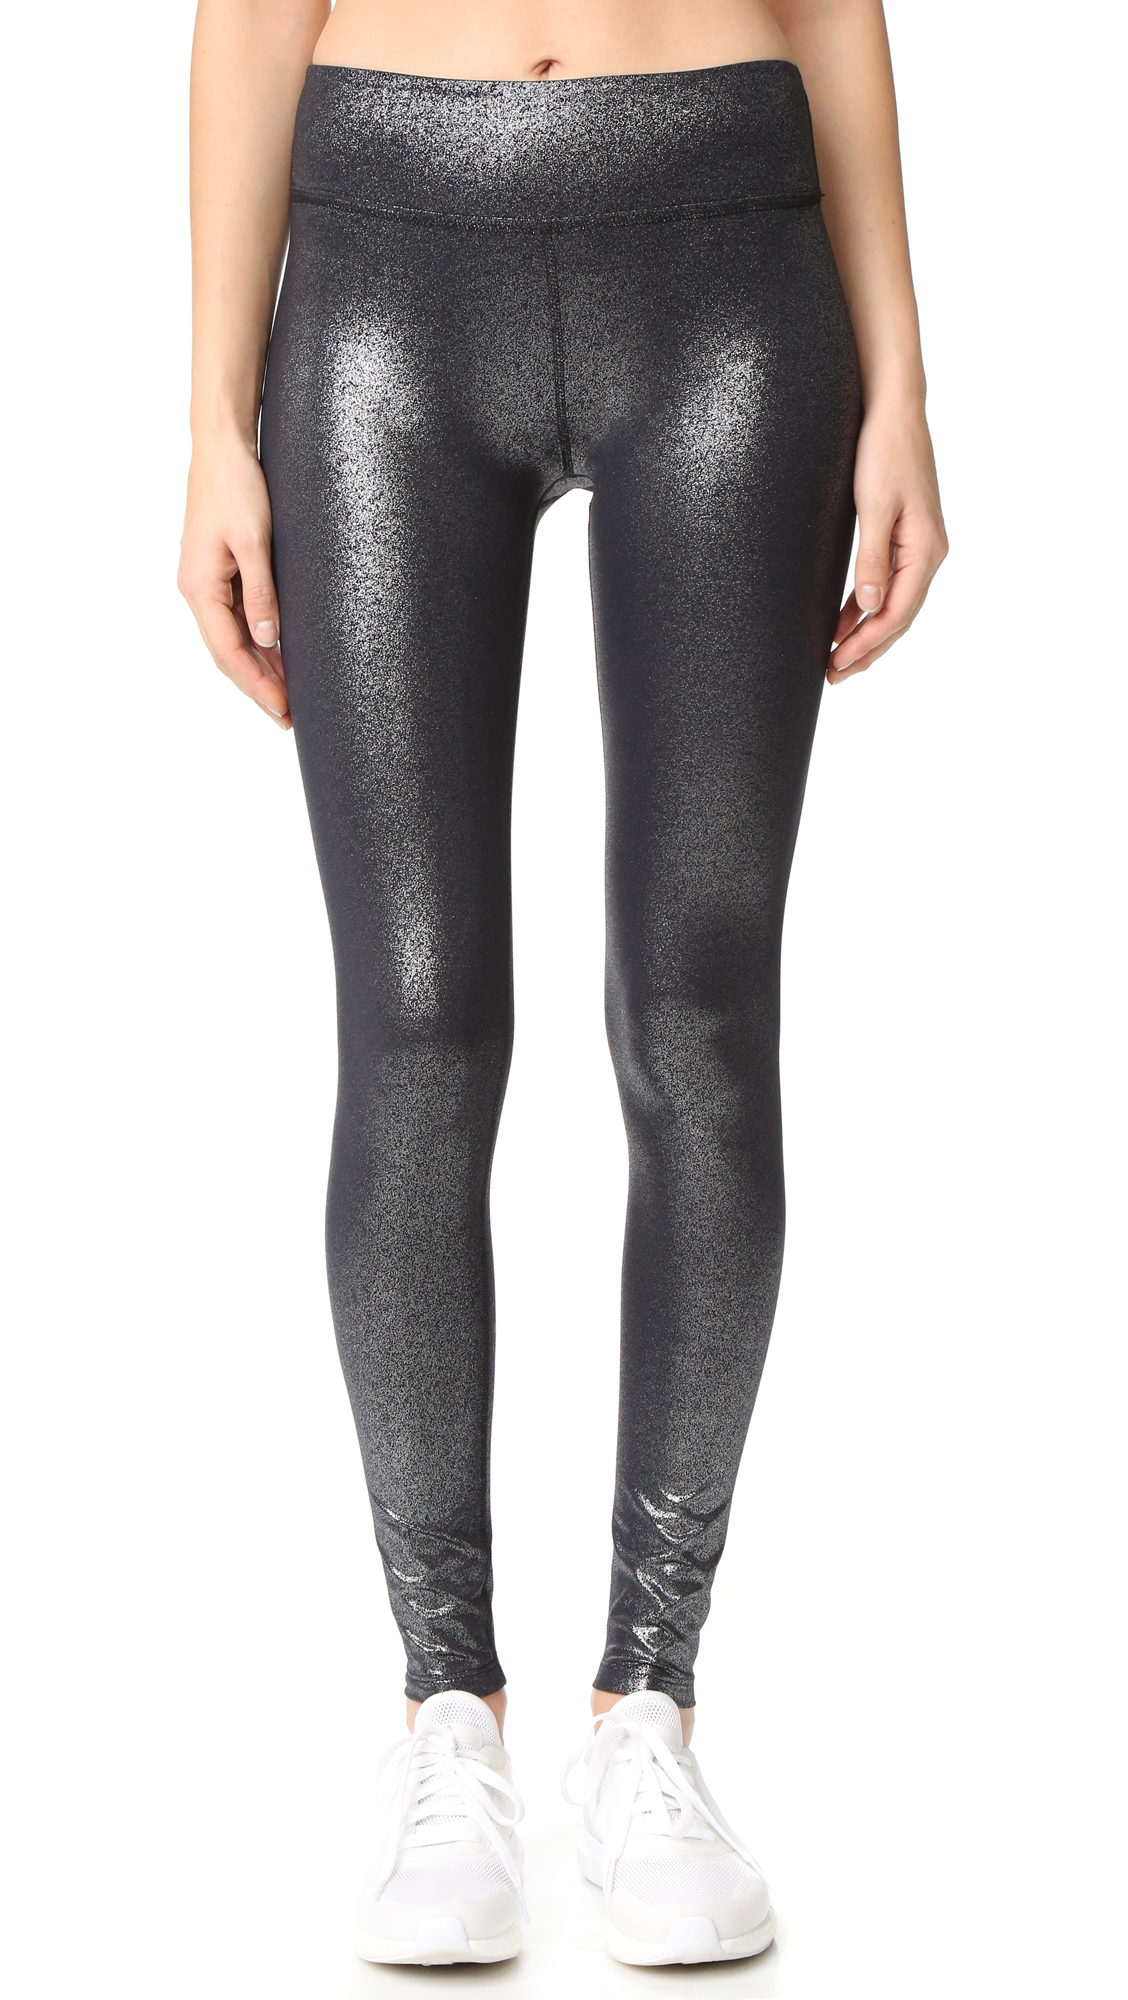 A metallic finish lends a glamorous touch to these Beyond Yoga leggings. Fabric: Activewear jersey. 75% nylon/25% spandex. Wash cold. Made in the USA. Measurements Rise: 8.75in / 22cm Inseam: 27.5in / 70cm Measurements from size S. Available sizes: